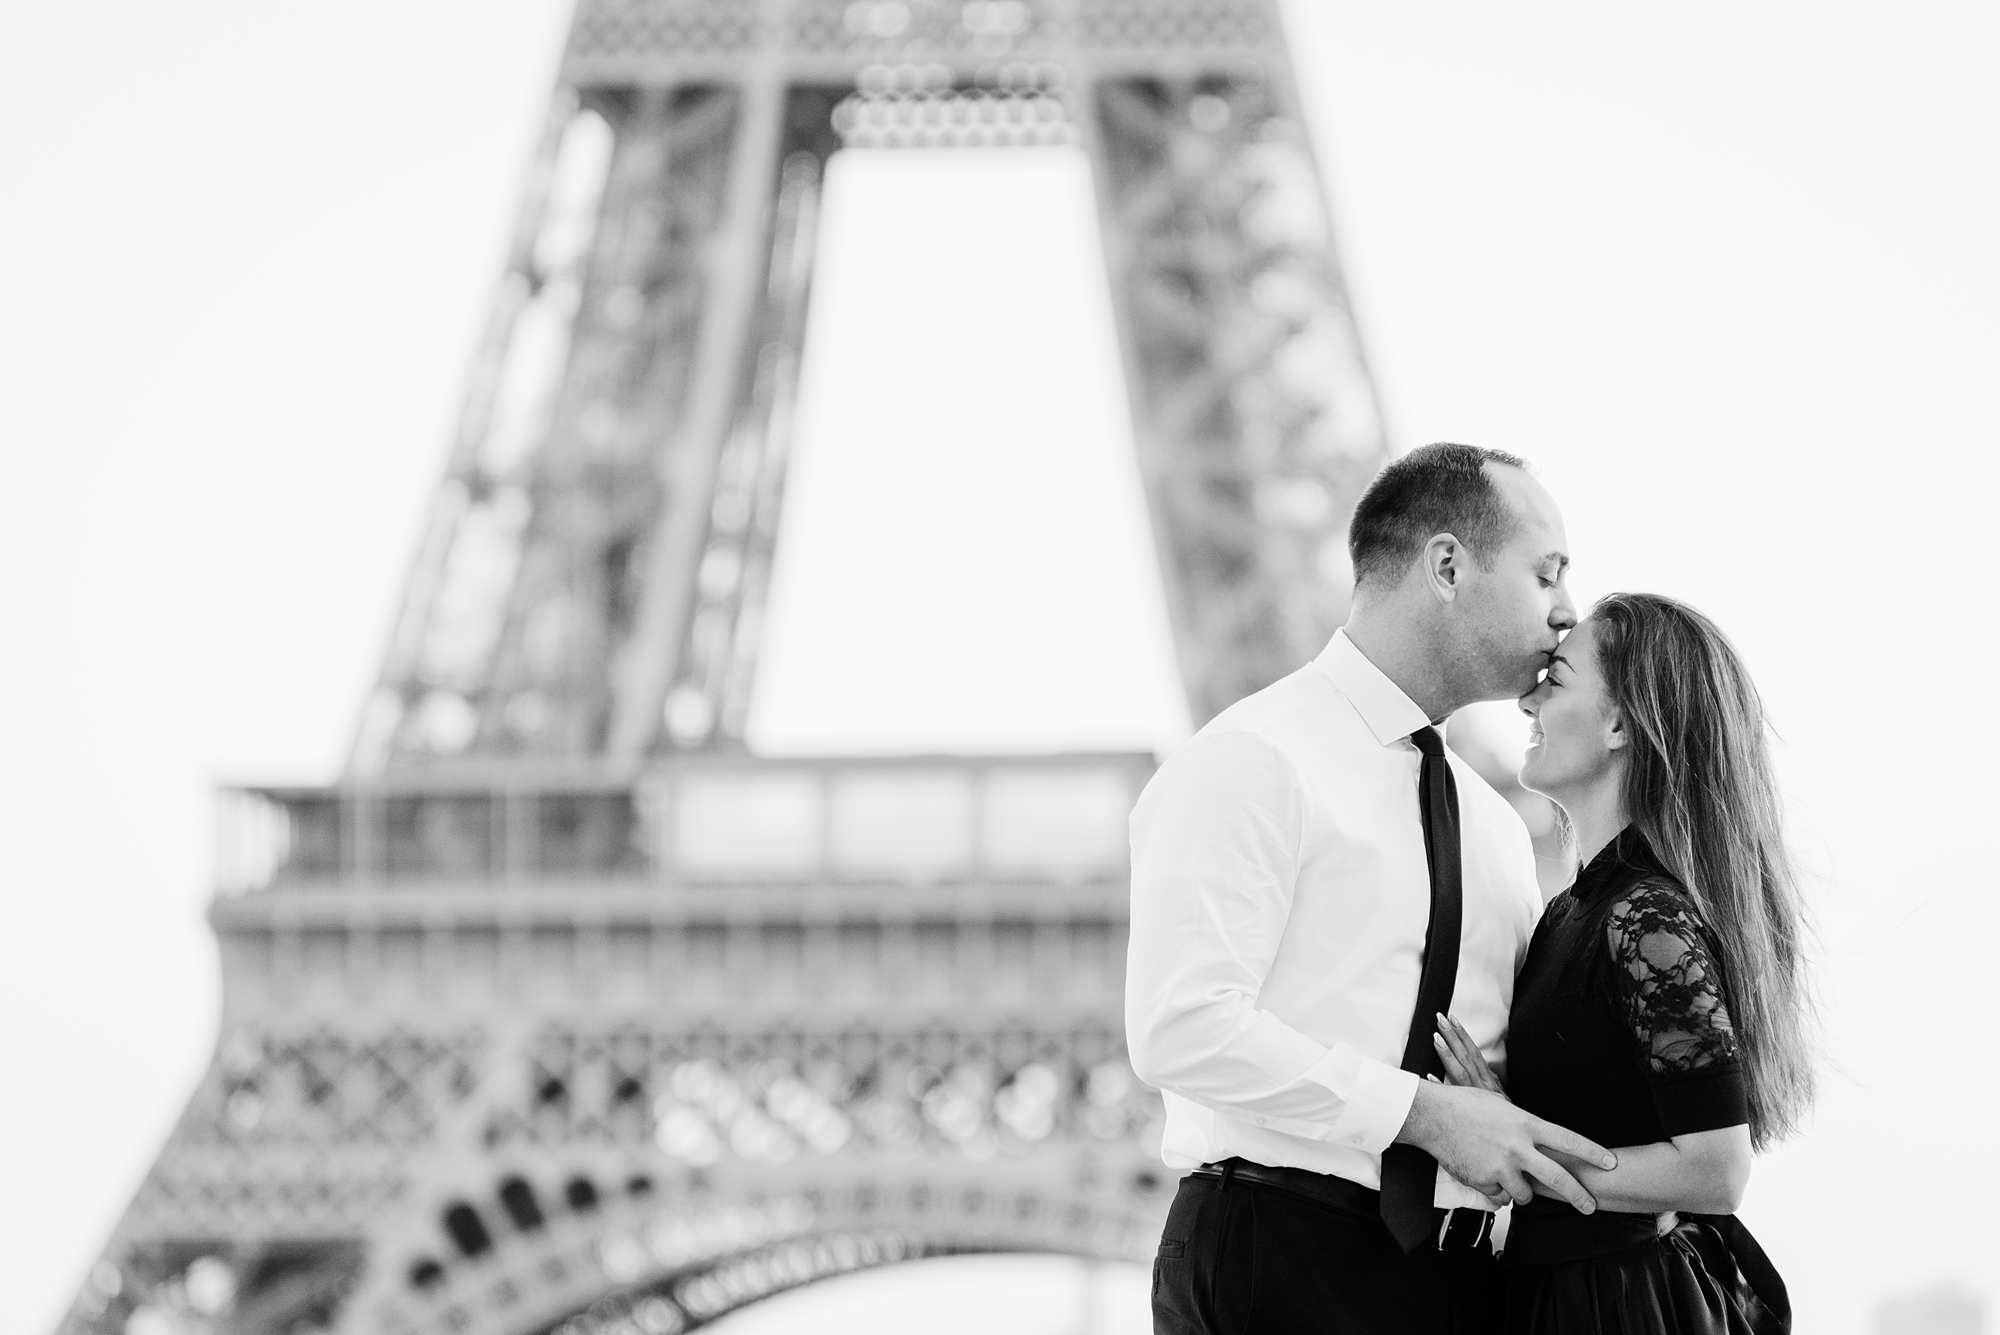 Jennifer and Yannick's Surprise Paris Proposal Photo Shoot at the Eiffel Tower - At Trocadero before the surprise (bw)